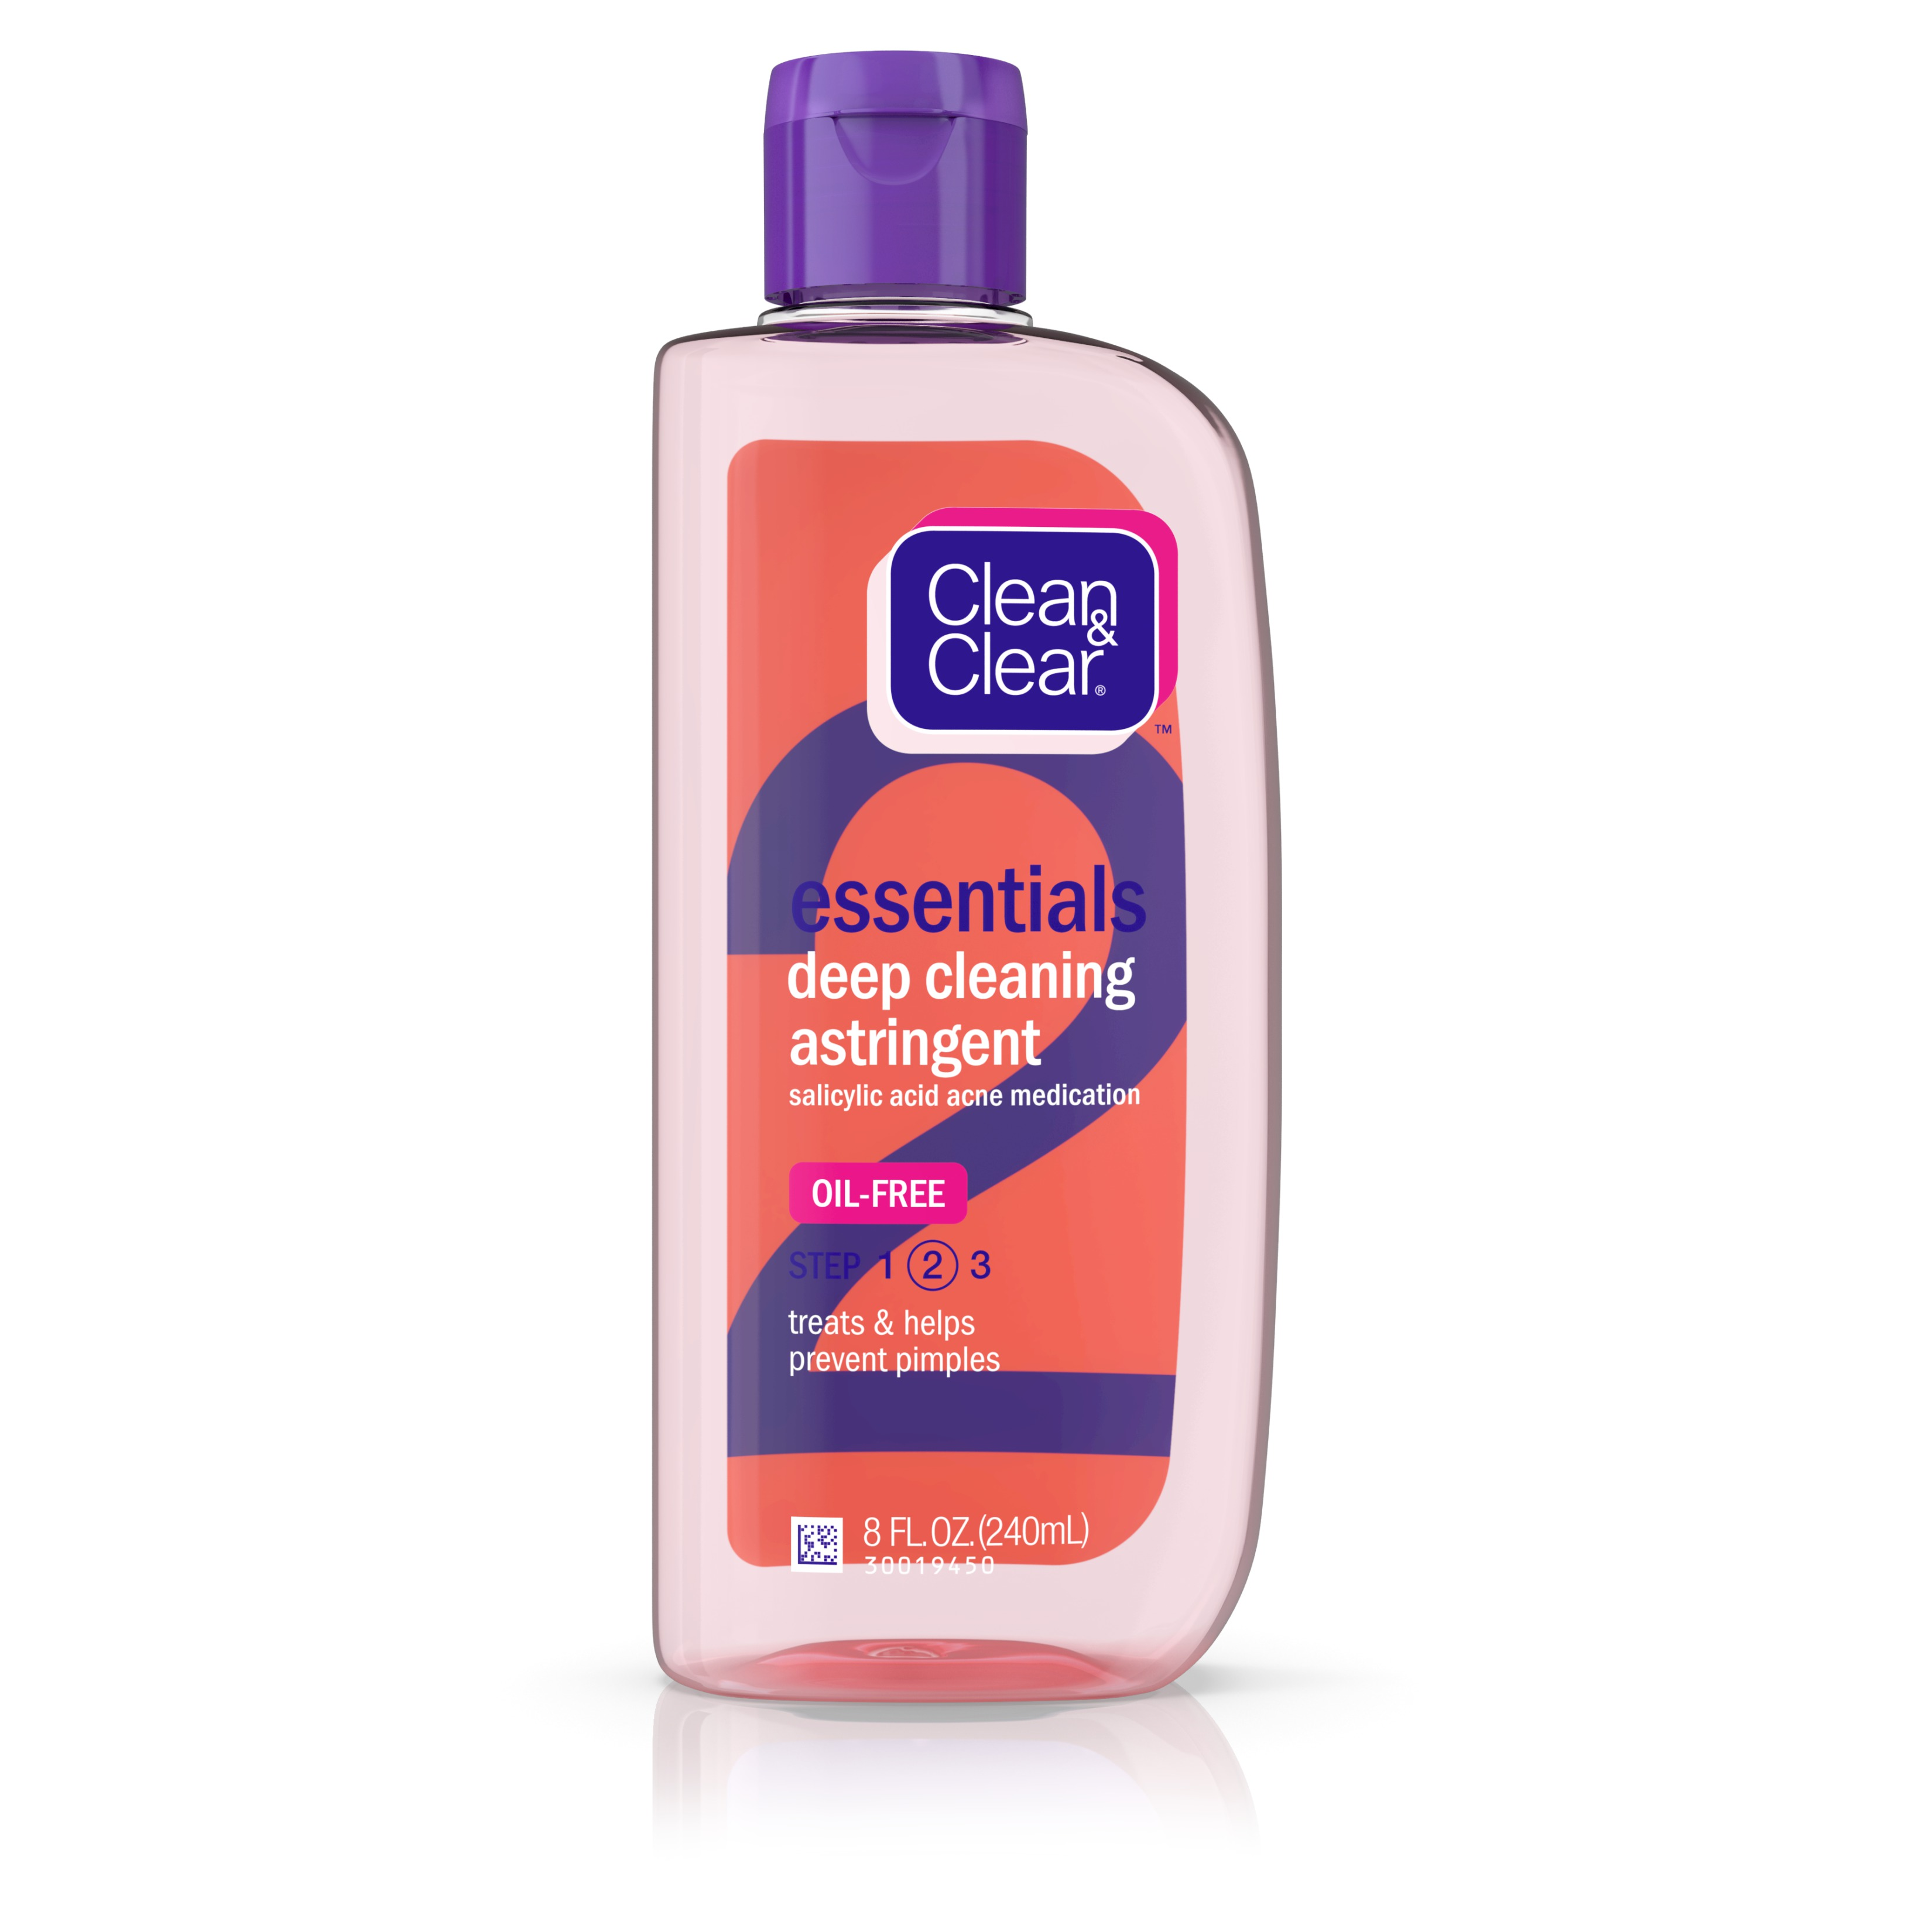 Clean & Clear Essentials Oil-Free Deep Cleaning Astringent, 8 fl. oz